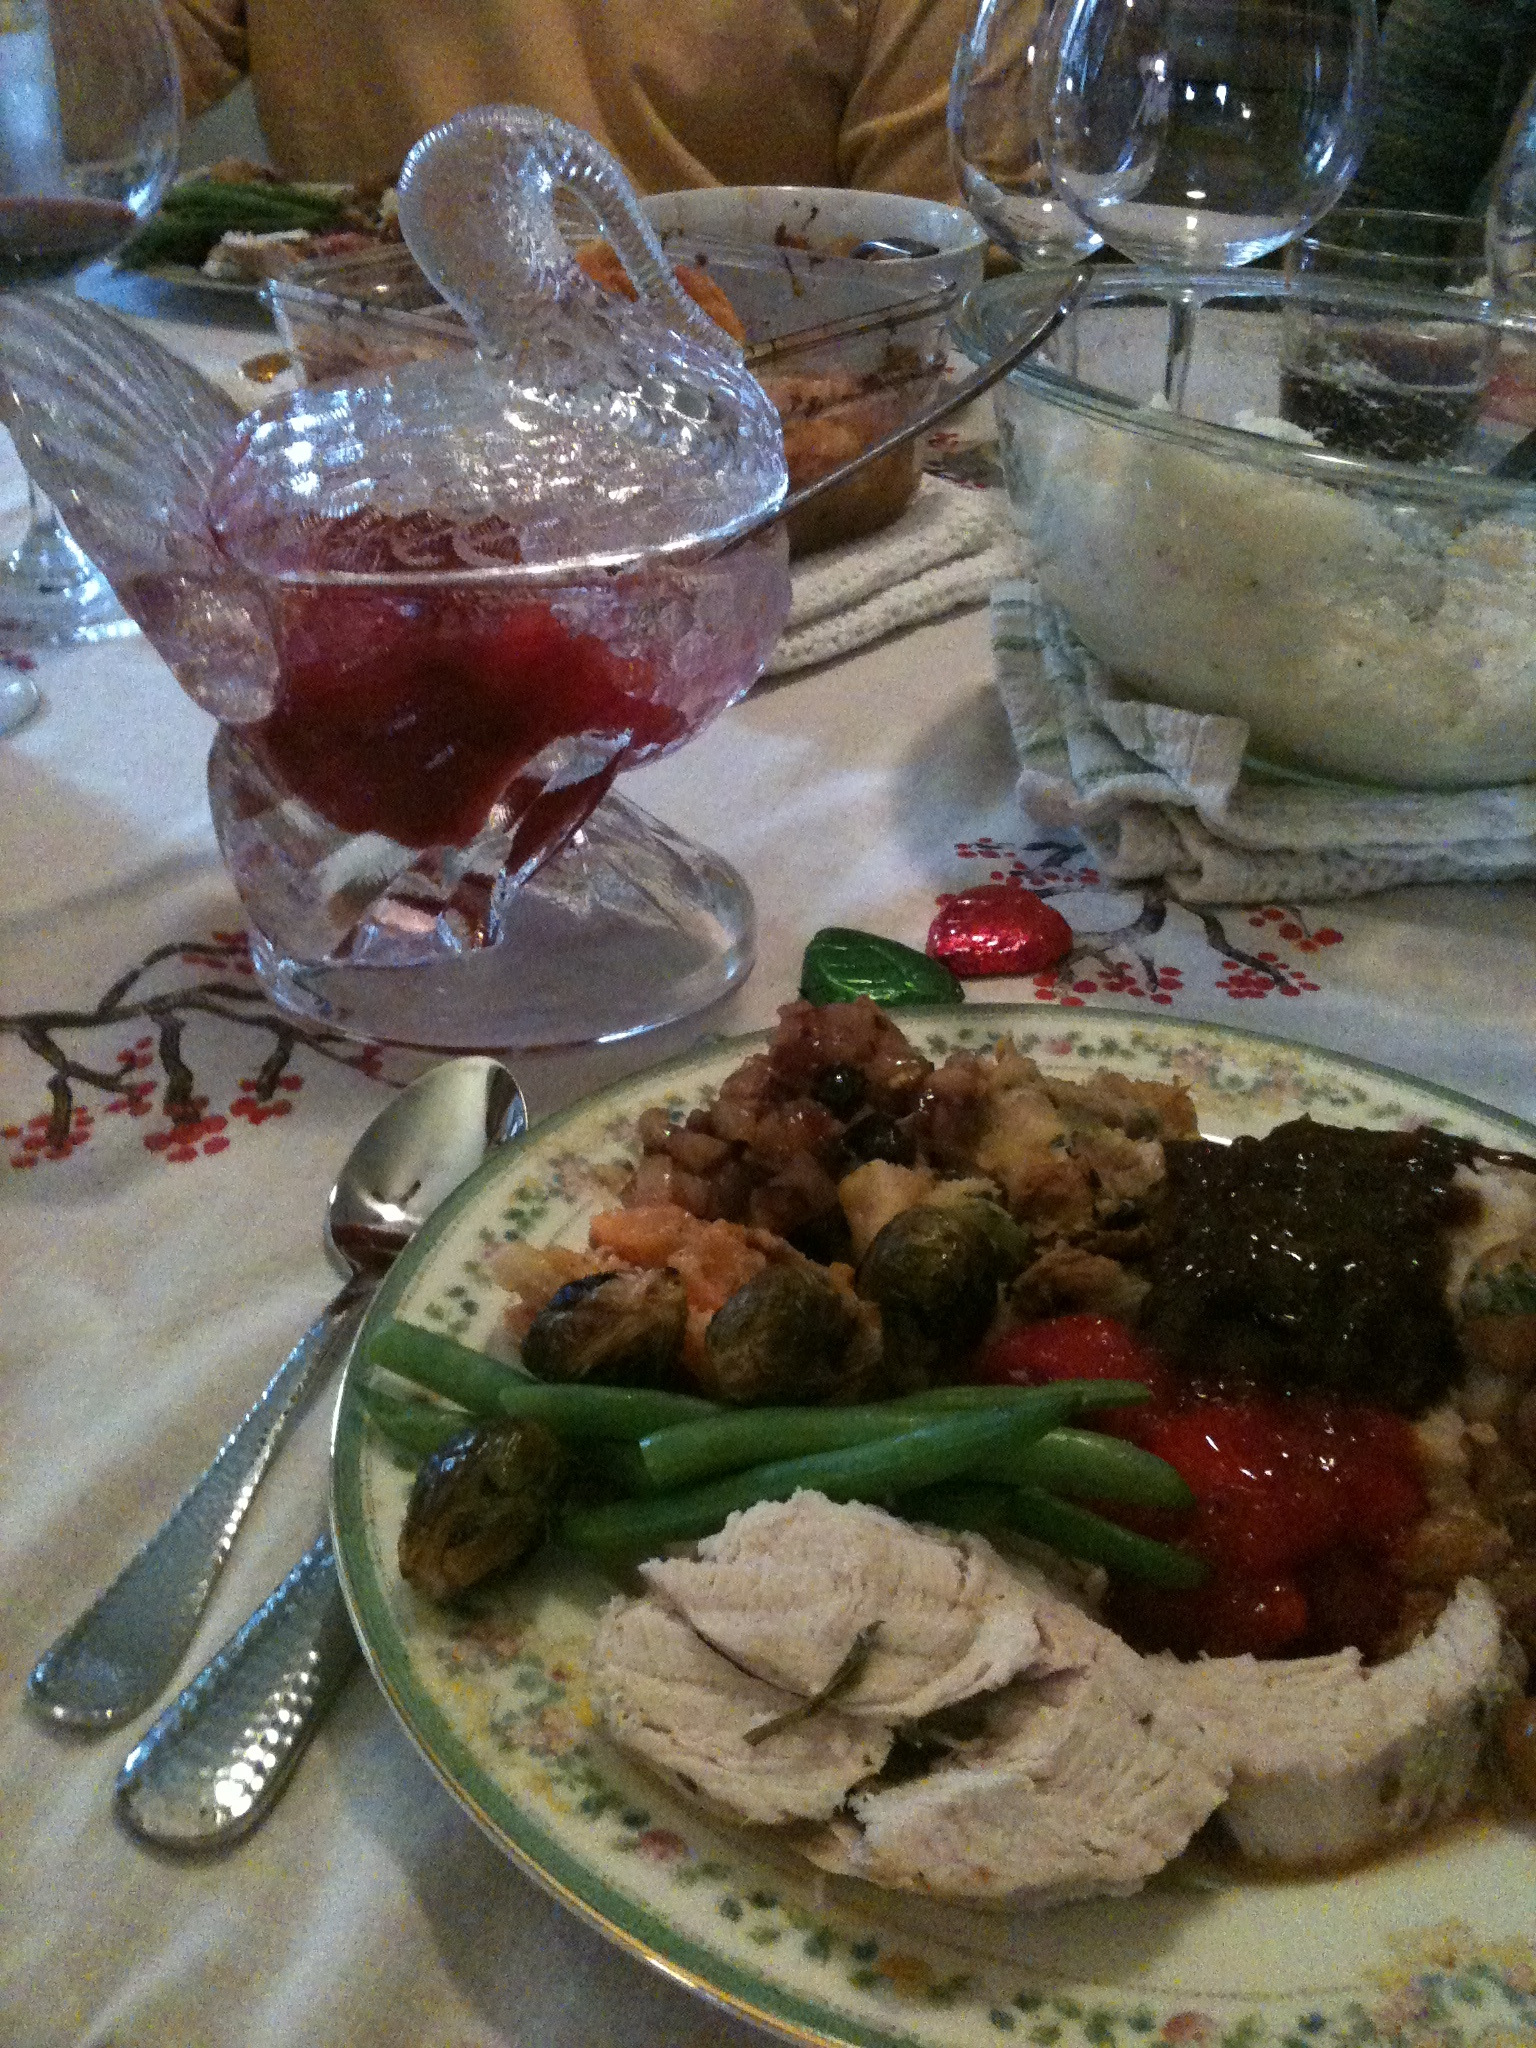 A tasty plate of food at the first Thanksgiving dinner I hosted.